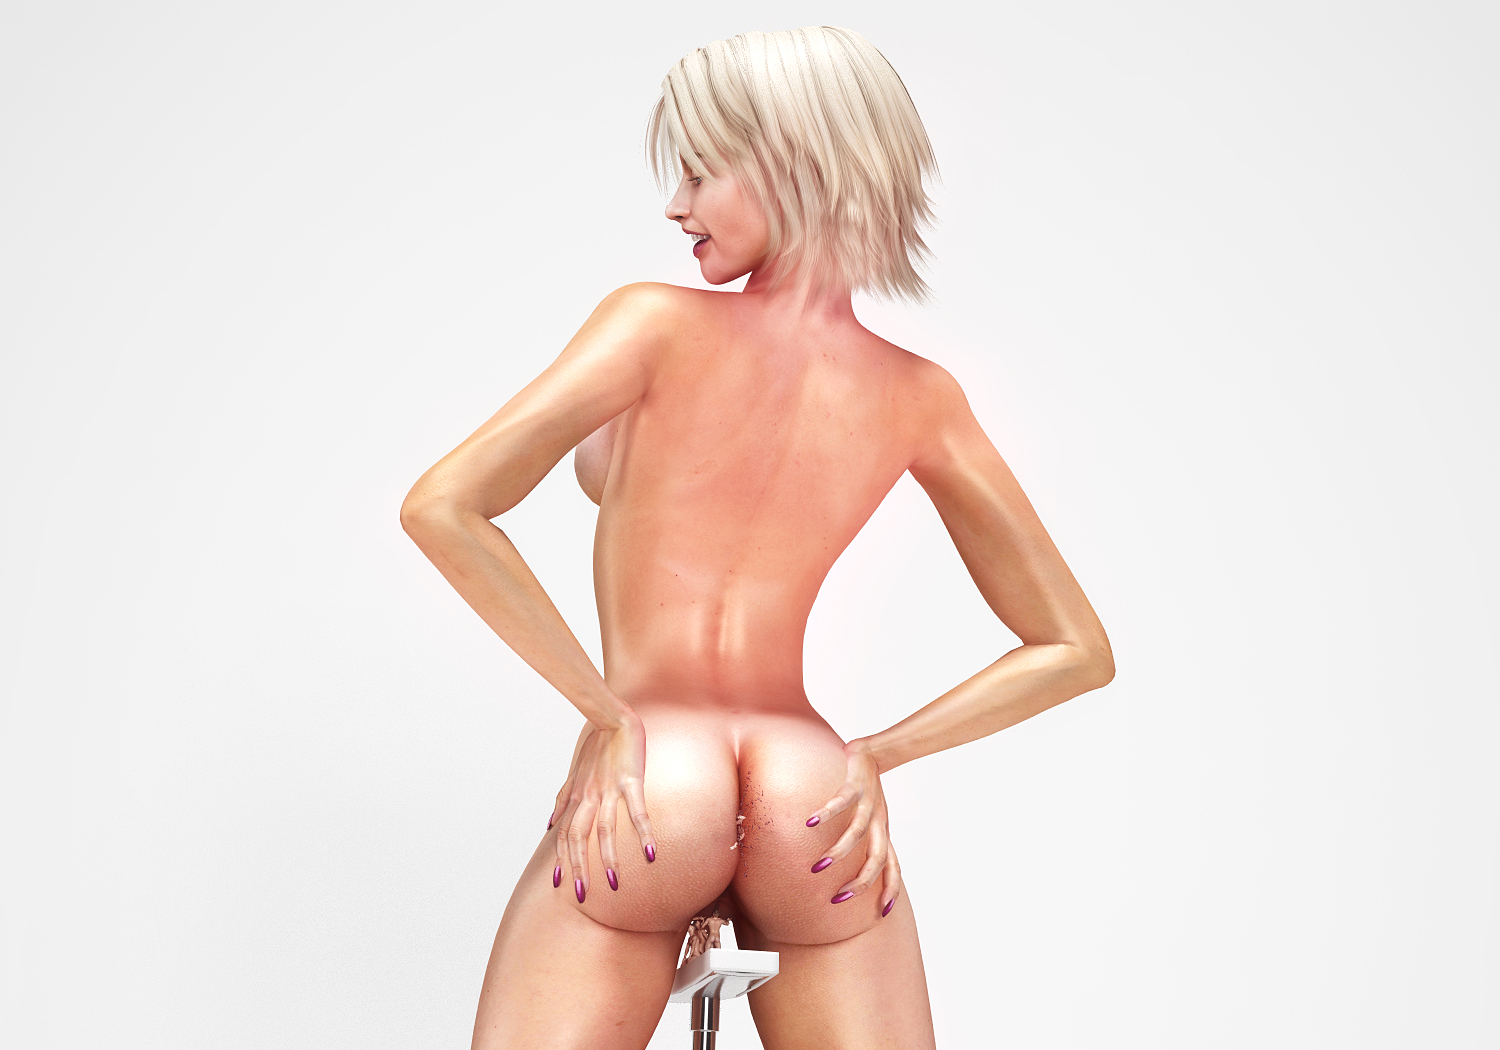 death by ass giantess jpg 1152x768